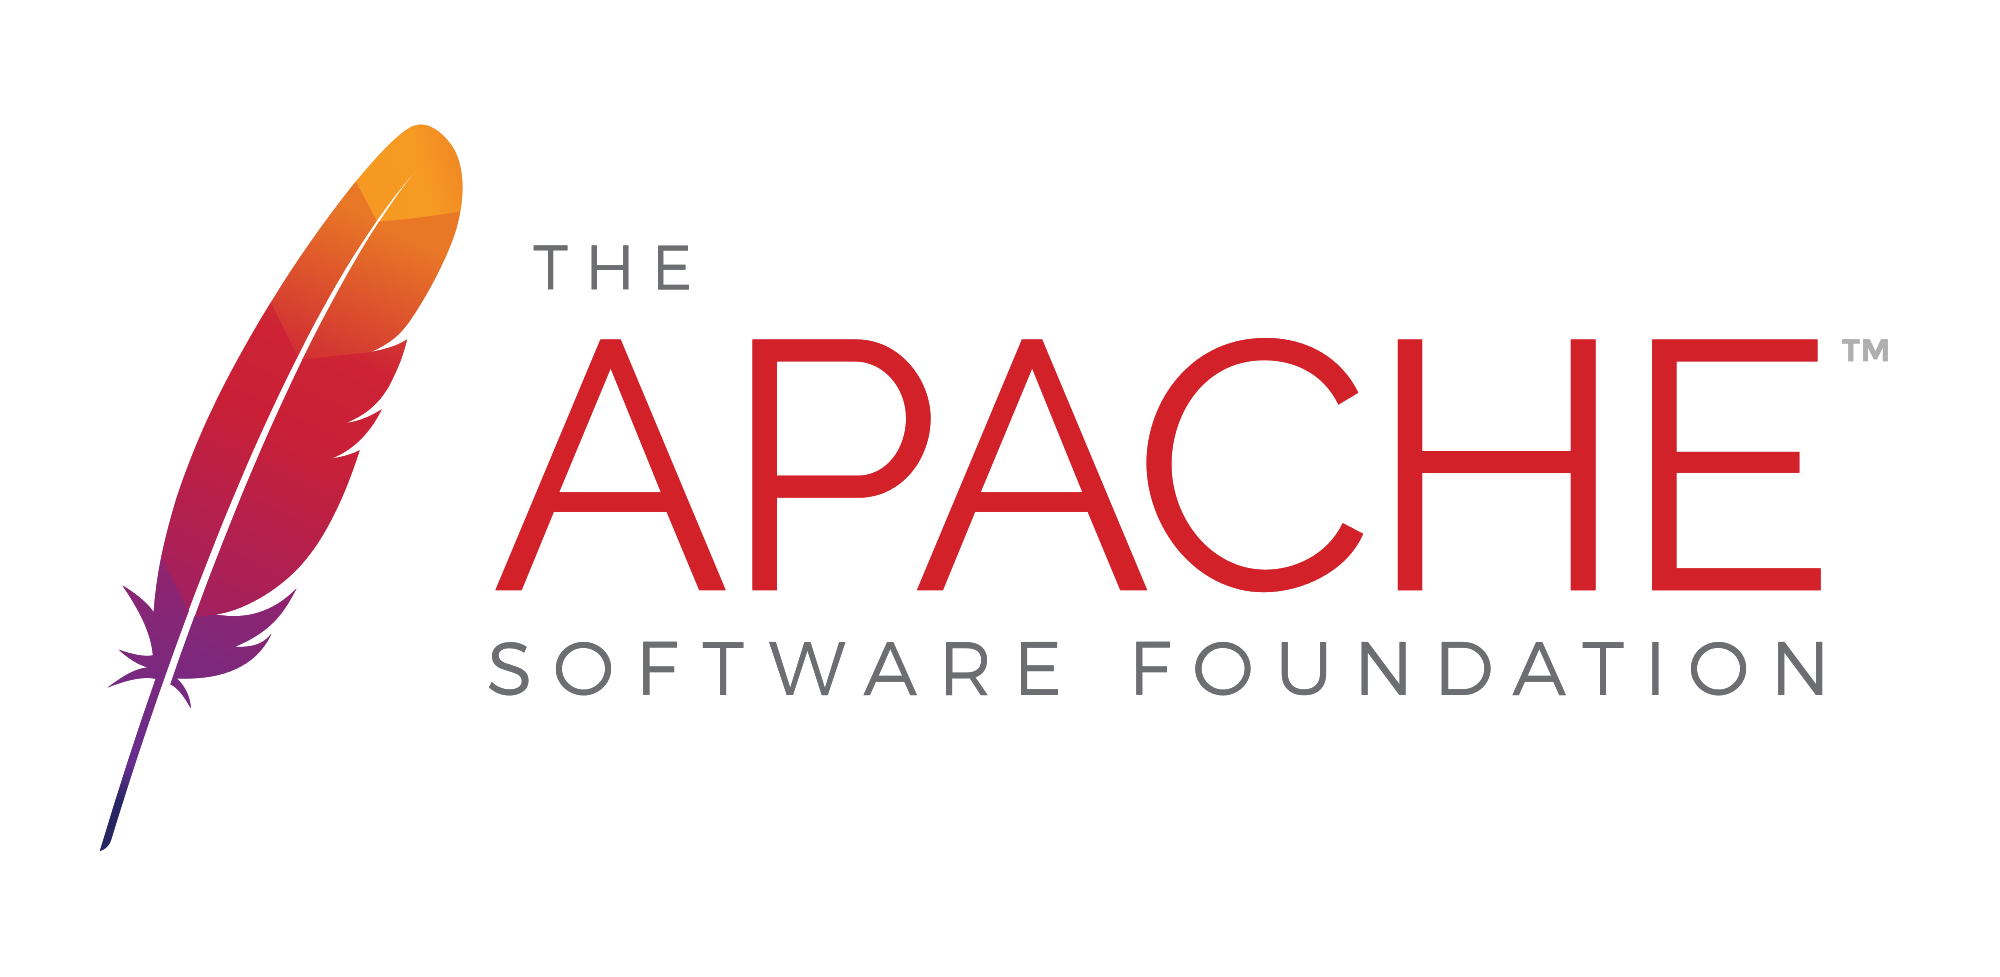 The Apache License